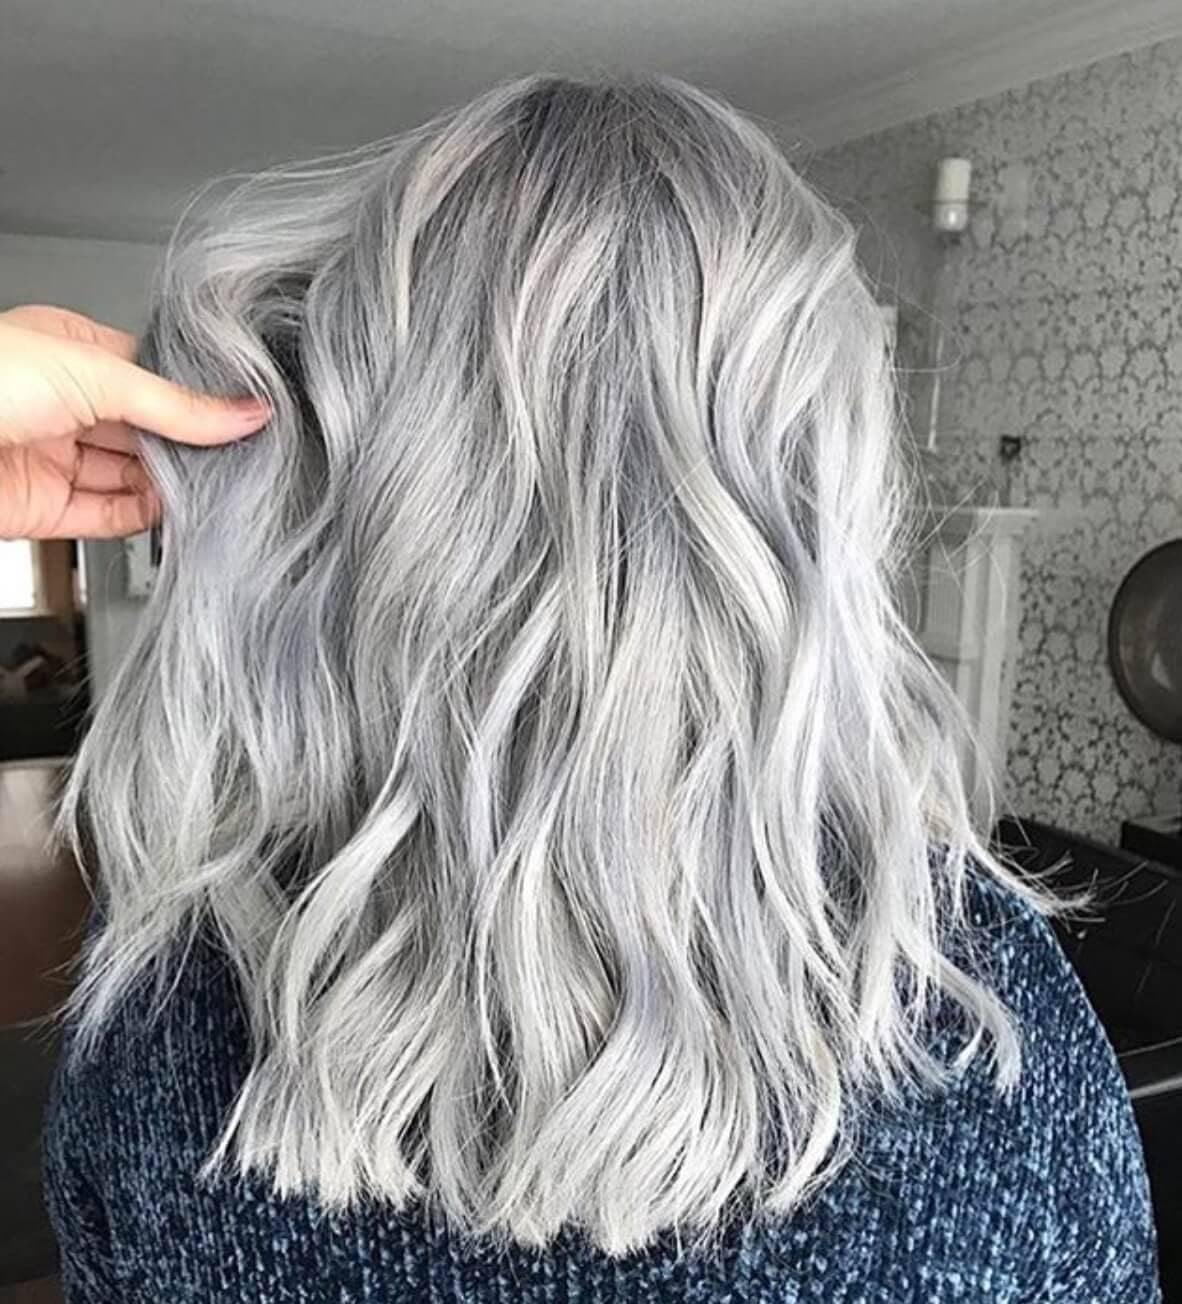 Allover Silver Hair Color With Highlights And Lowlights